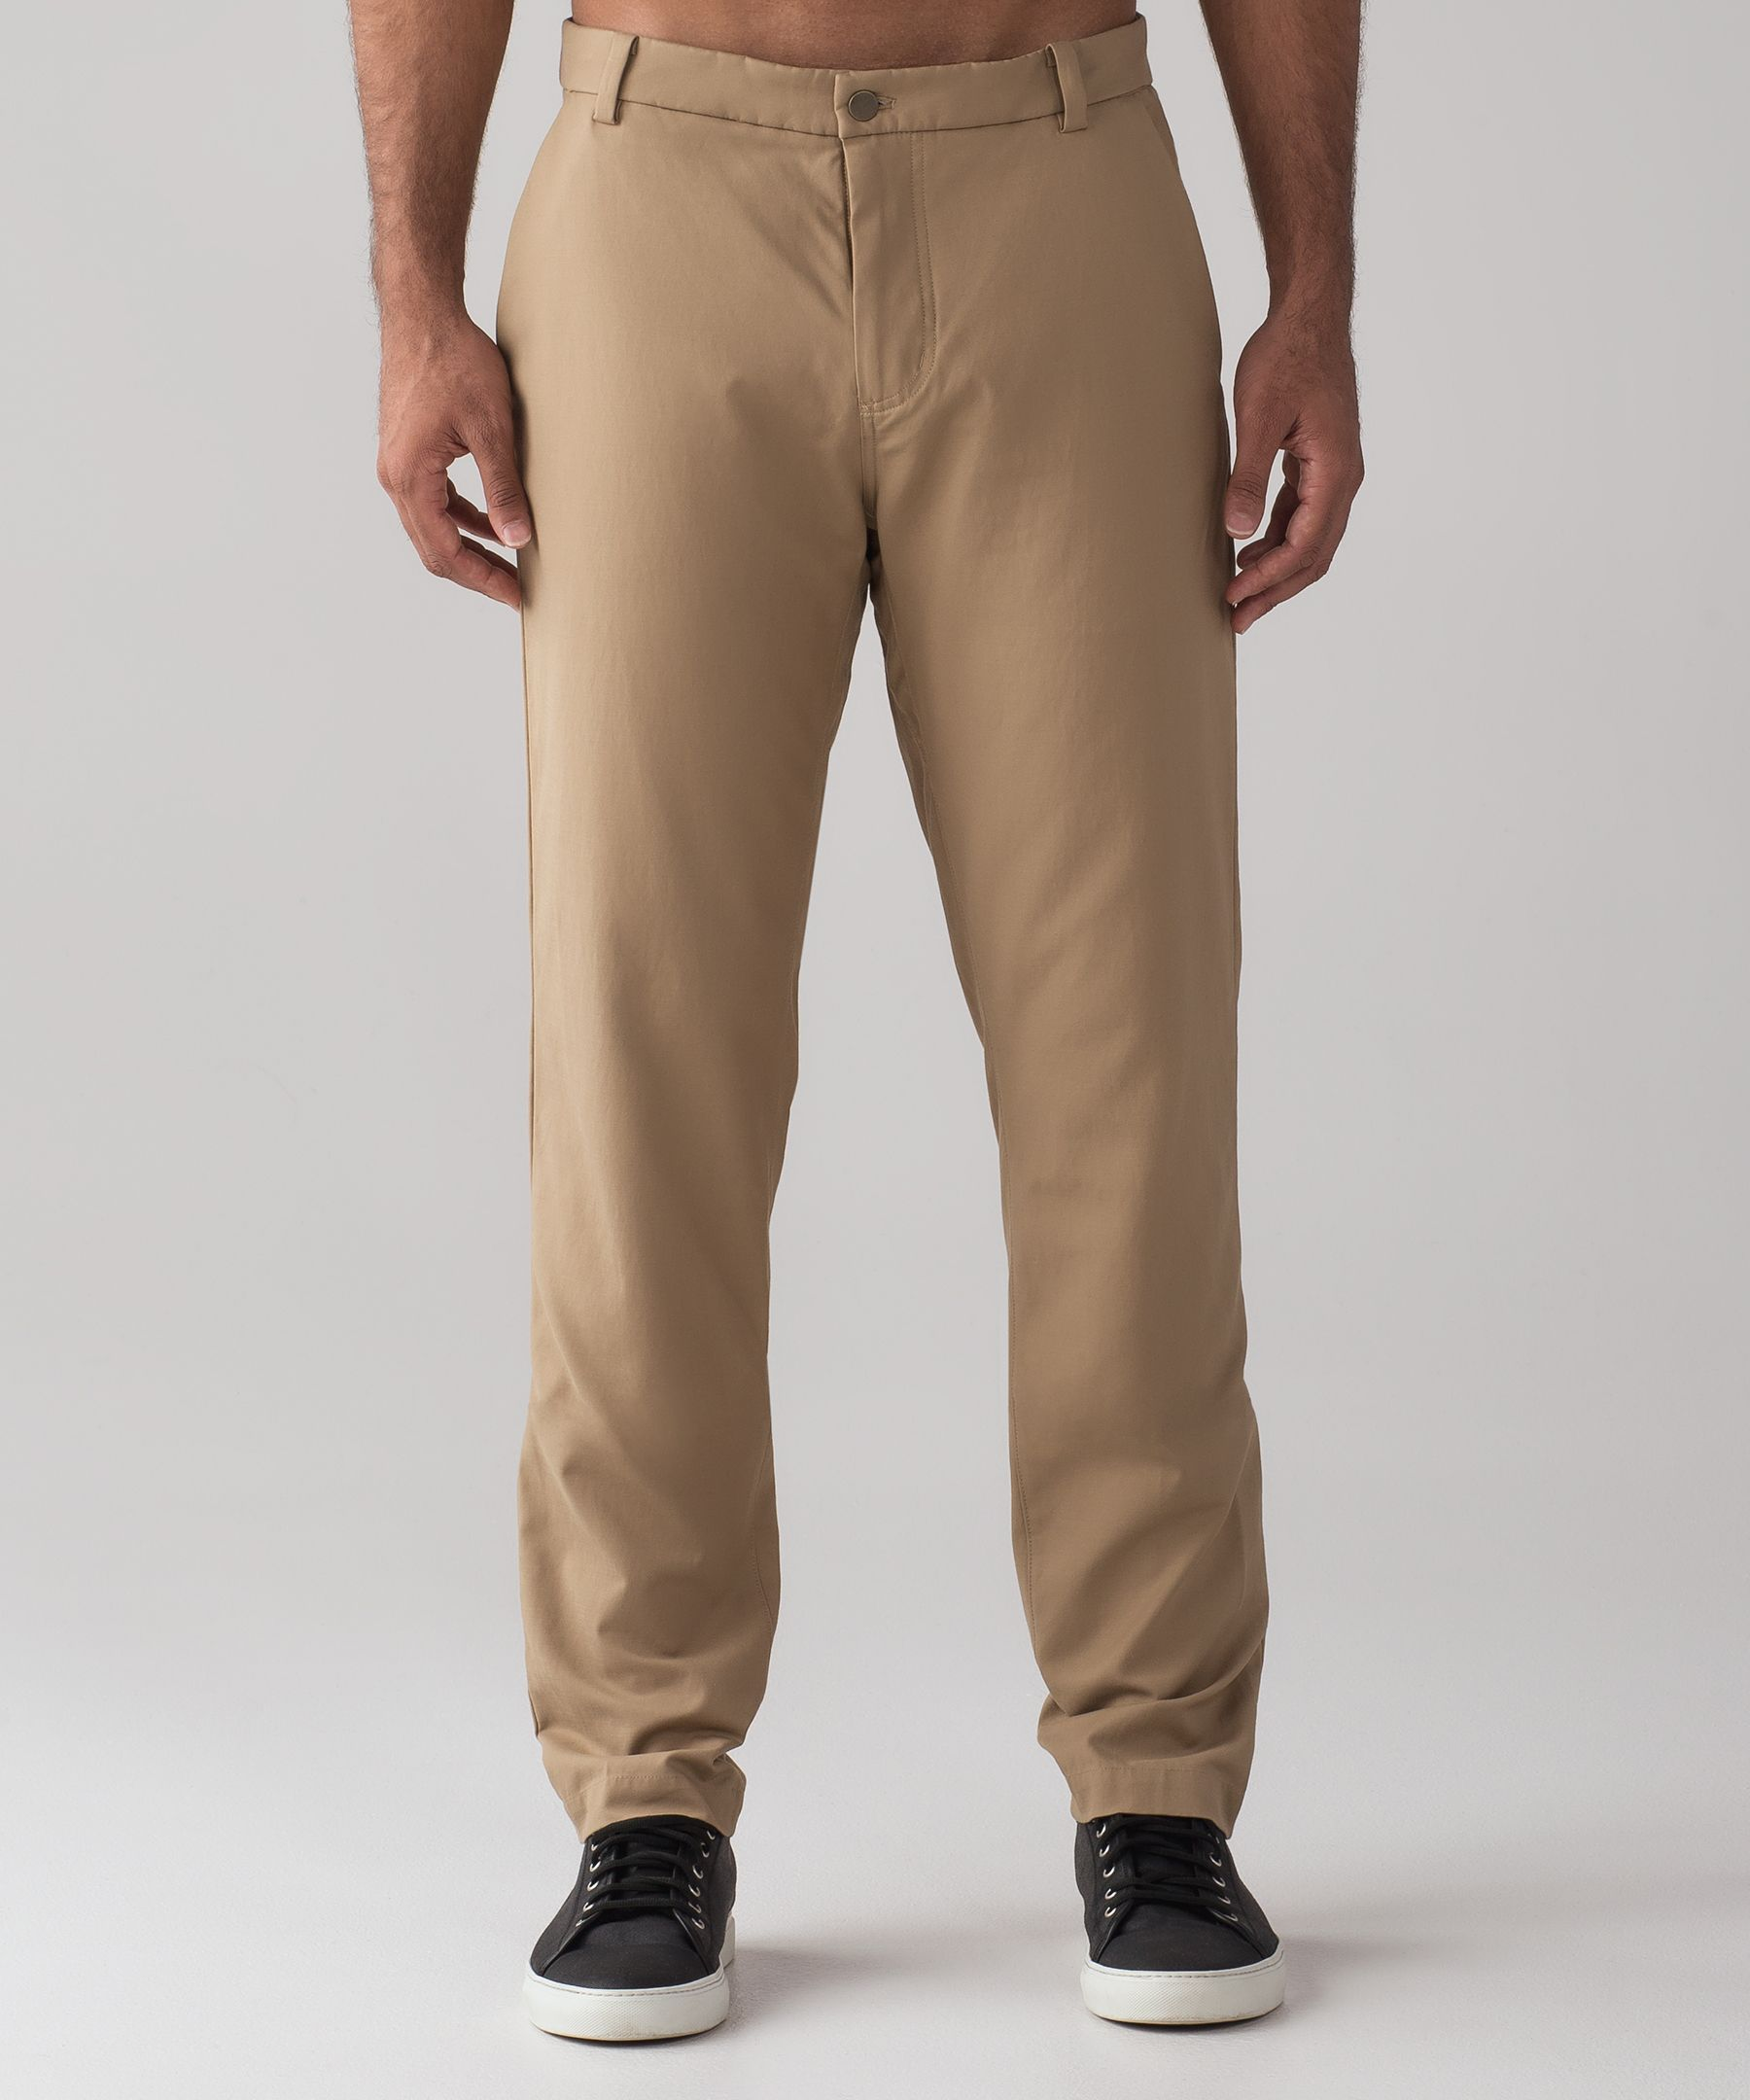 Commission Pant (Regular) *Qwick Chino